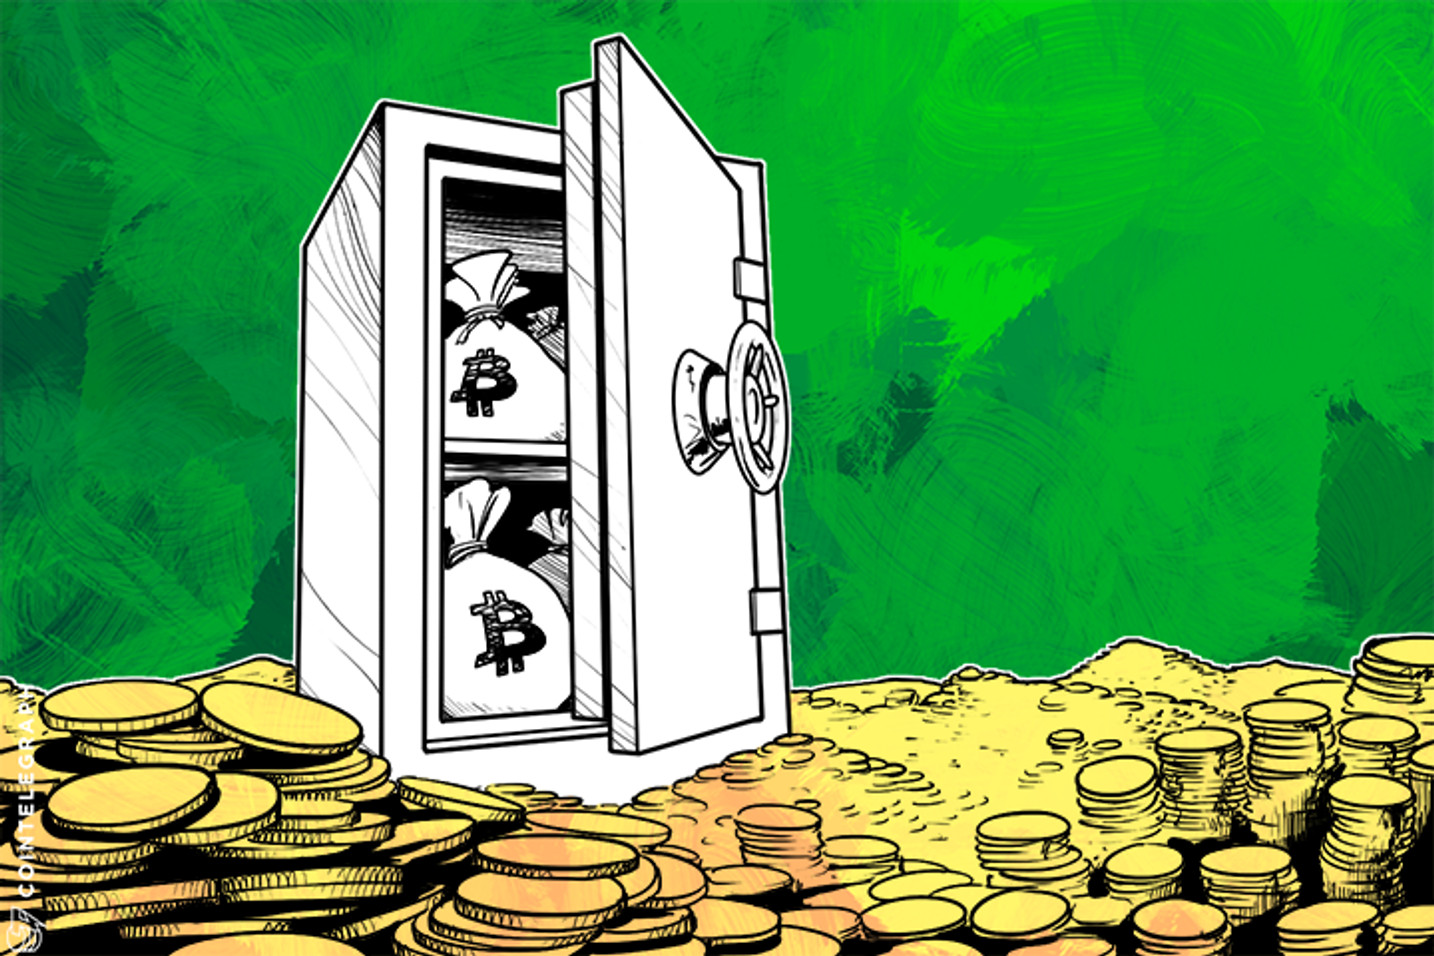 Coinbase-linked Bitcoin Savings Account BSHARE in $400k Investment